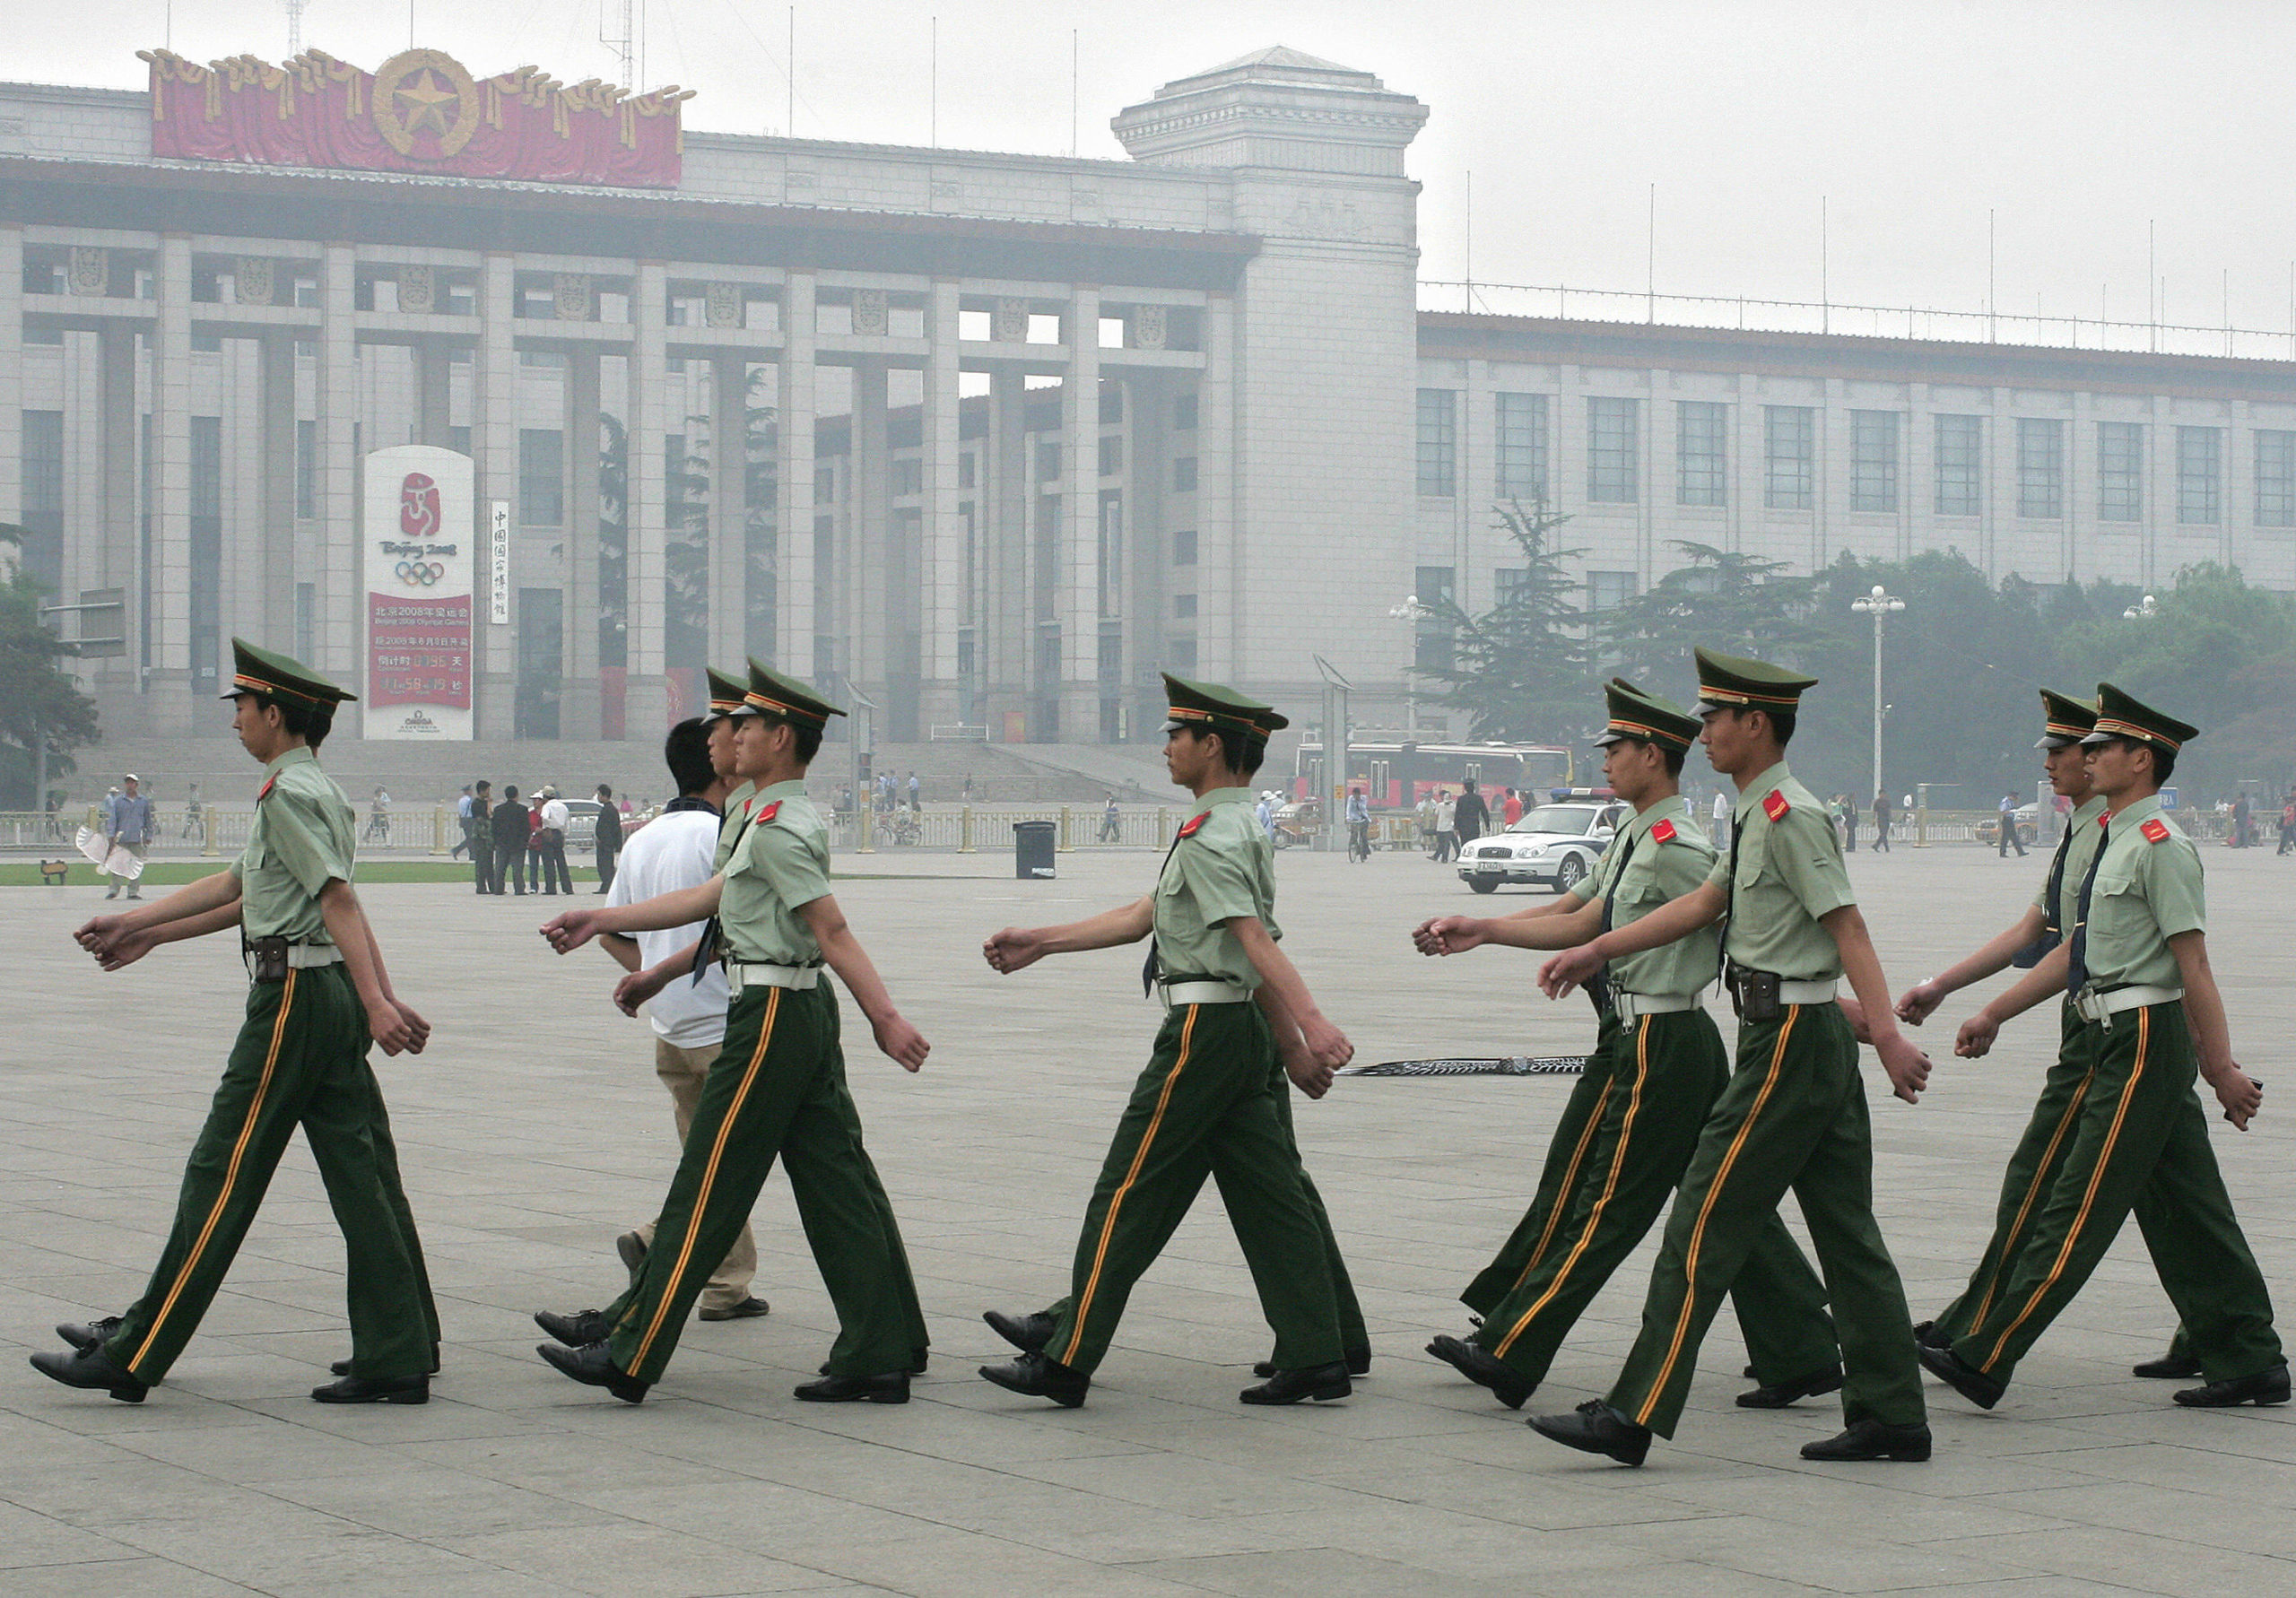 Paramilitary police march on Tiananmen Square, 04 June 2006. (Photo by FREDERIC J. BROWN/AFP via Getty Images)